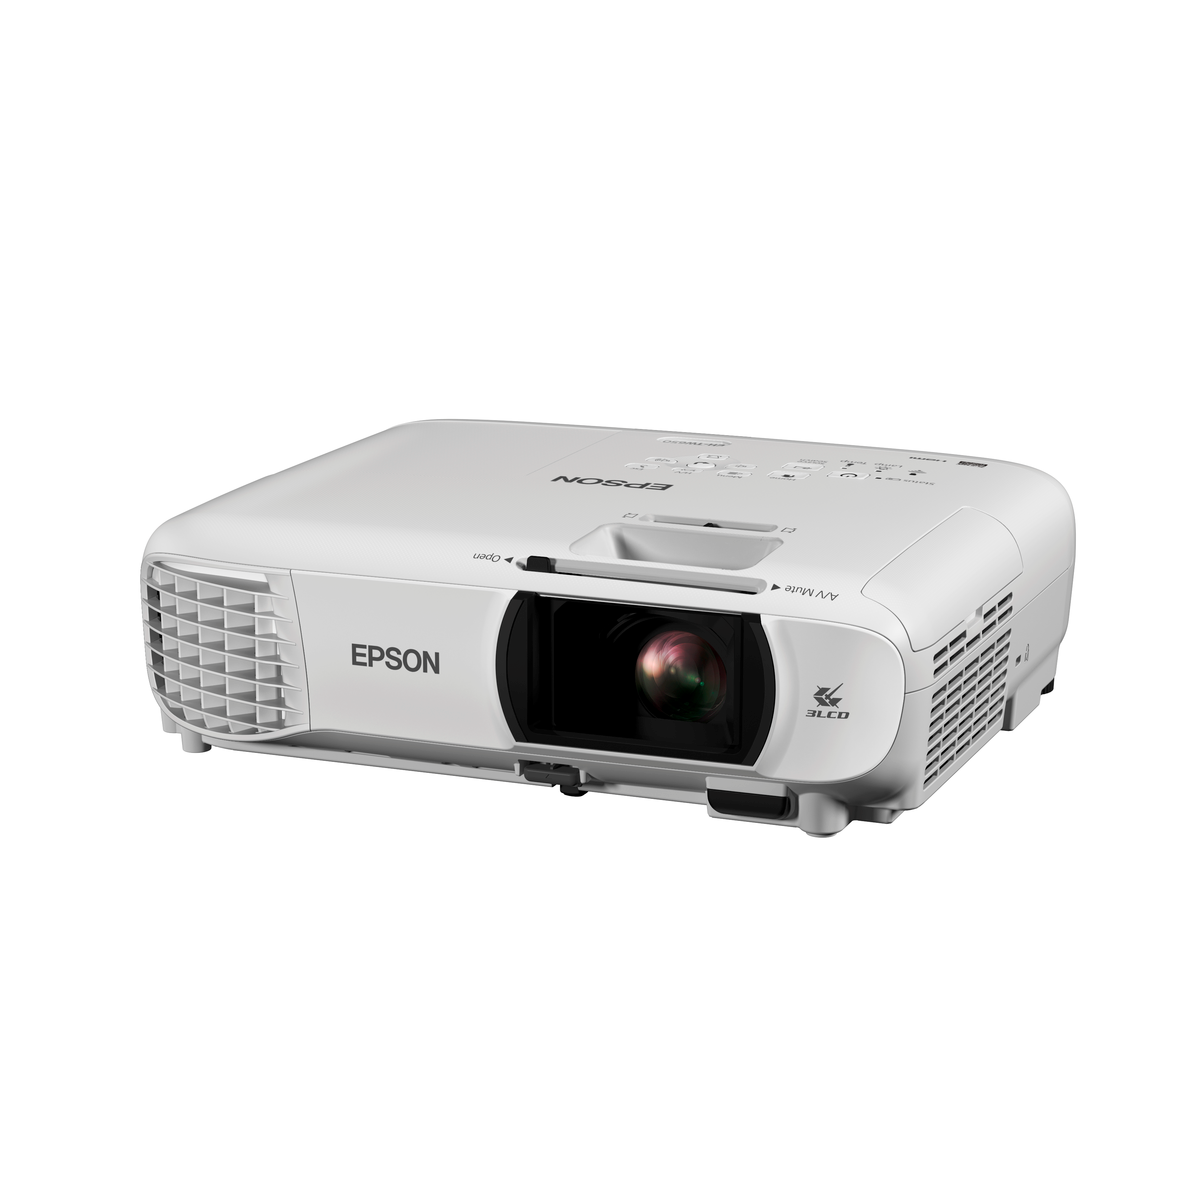 Epson EH-TW650 - Full HD 3LCD Home Theatre Projector - AVStore